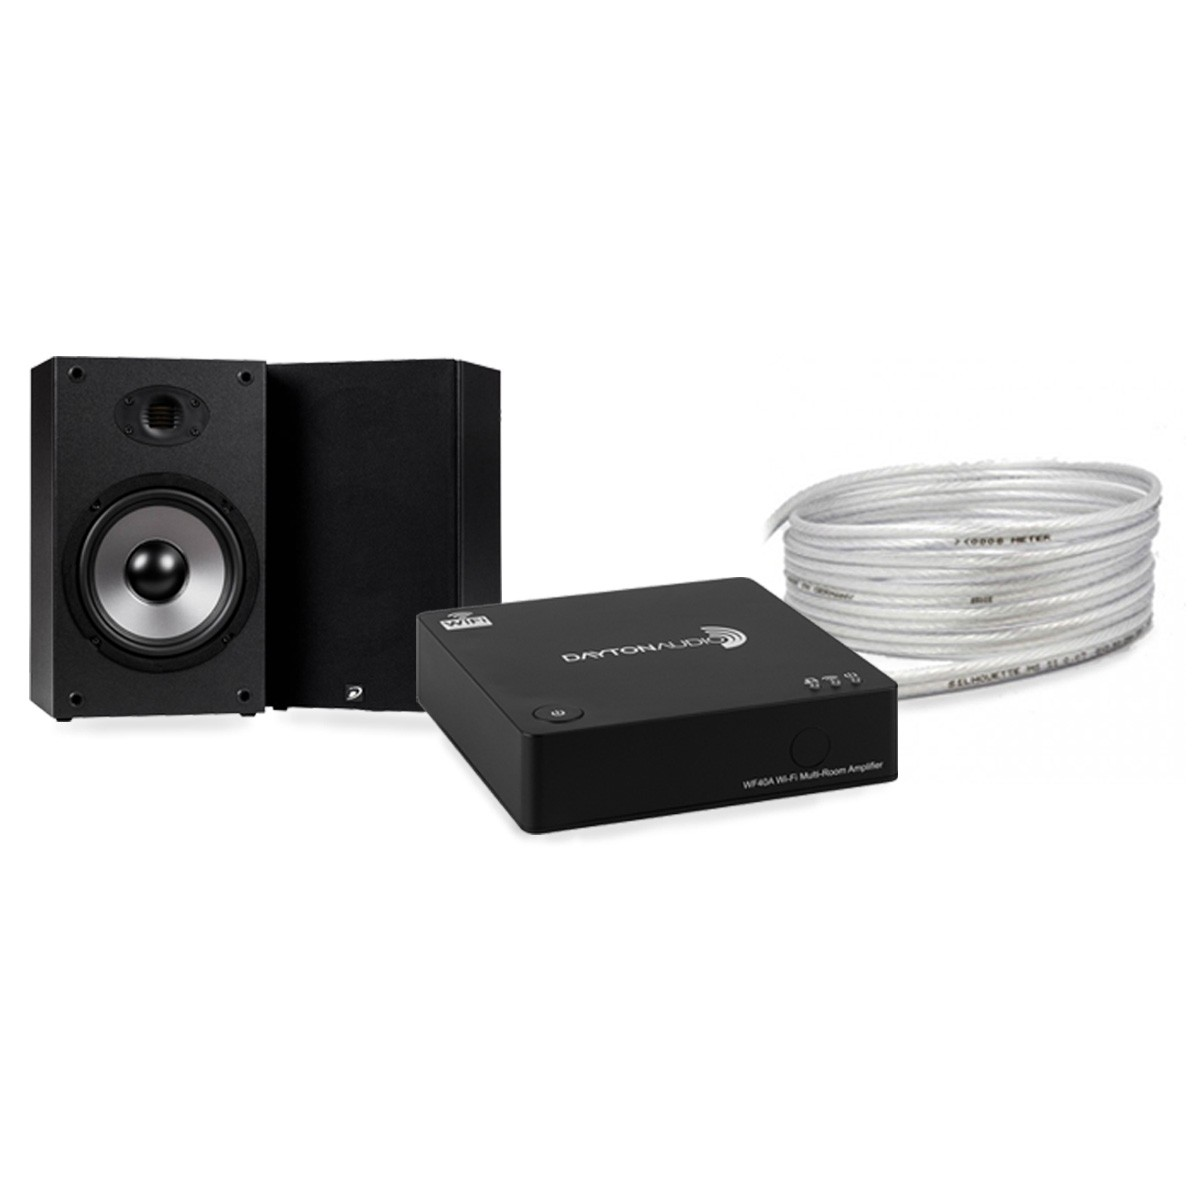 Pack DAYTON AUDIO WF40A Amplifier + DAYTON AUDIO B652 AIR Speakers + MEDIA-SUN SILHOUETTE MS2S Speaker Cable 4m